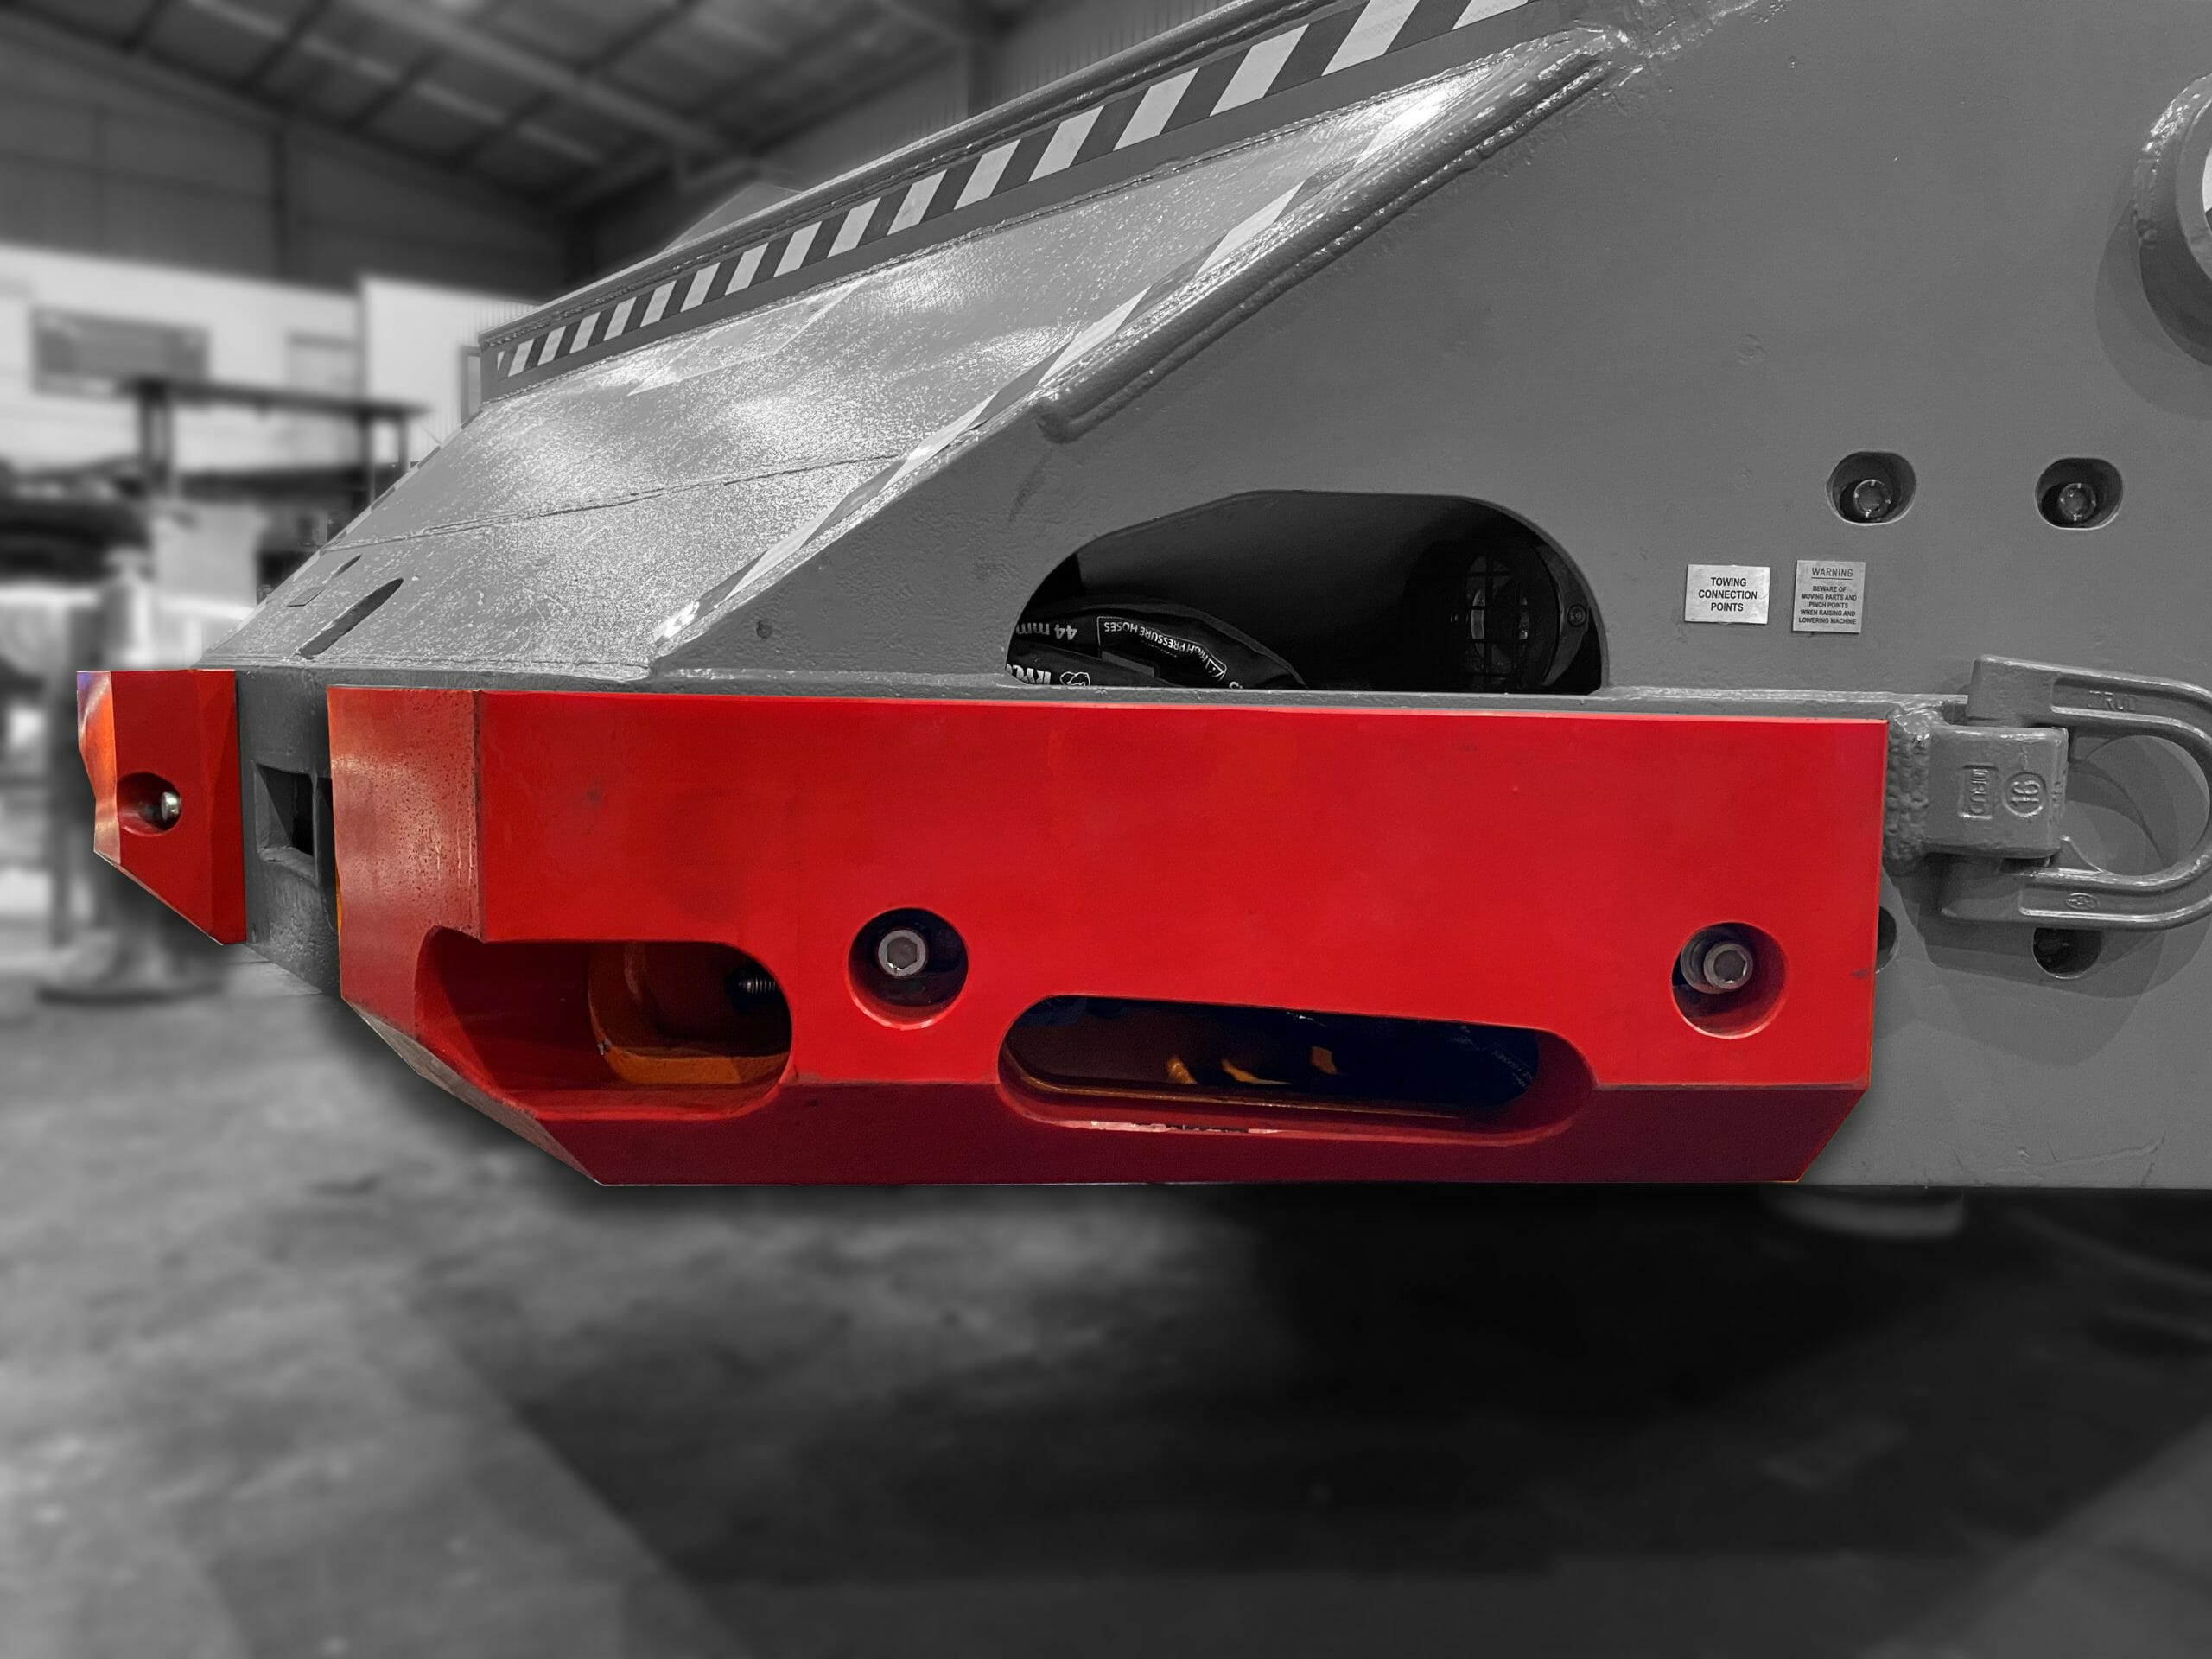 FRAS polyurethane replacement parts installed on an underground coal mine shuttle car